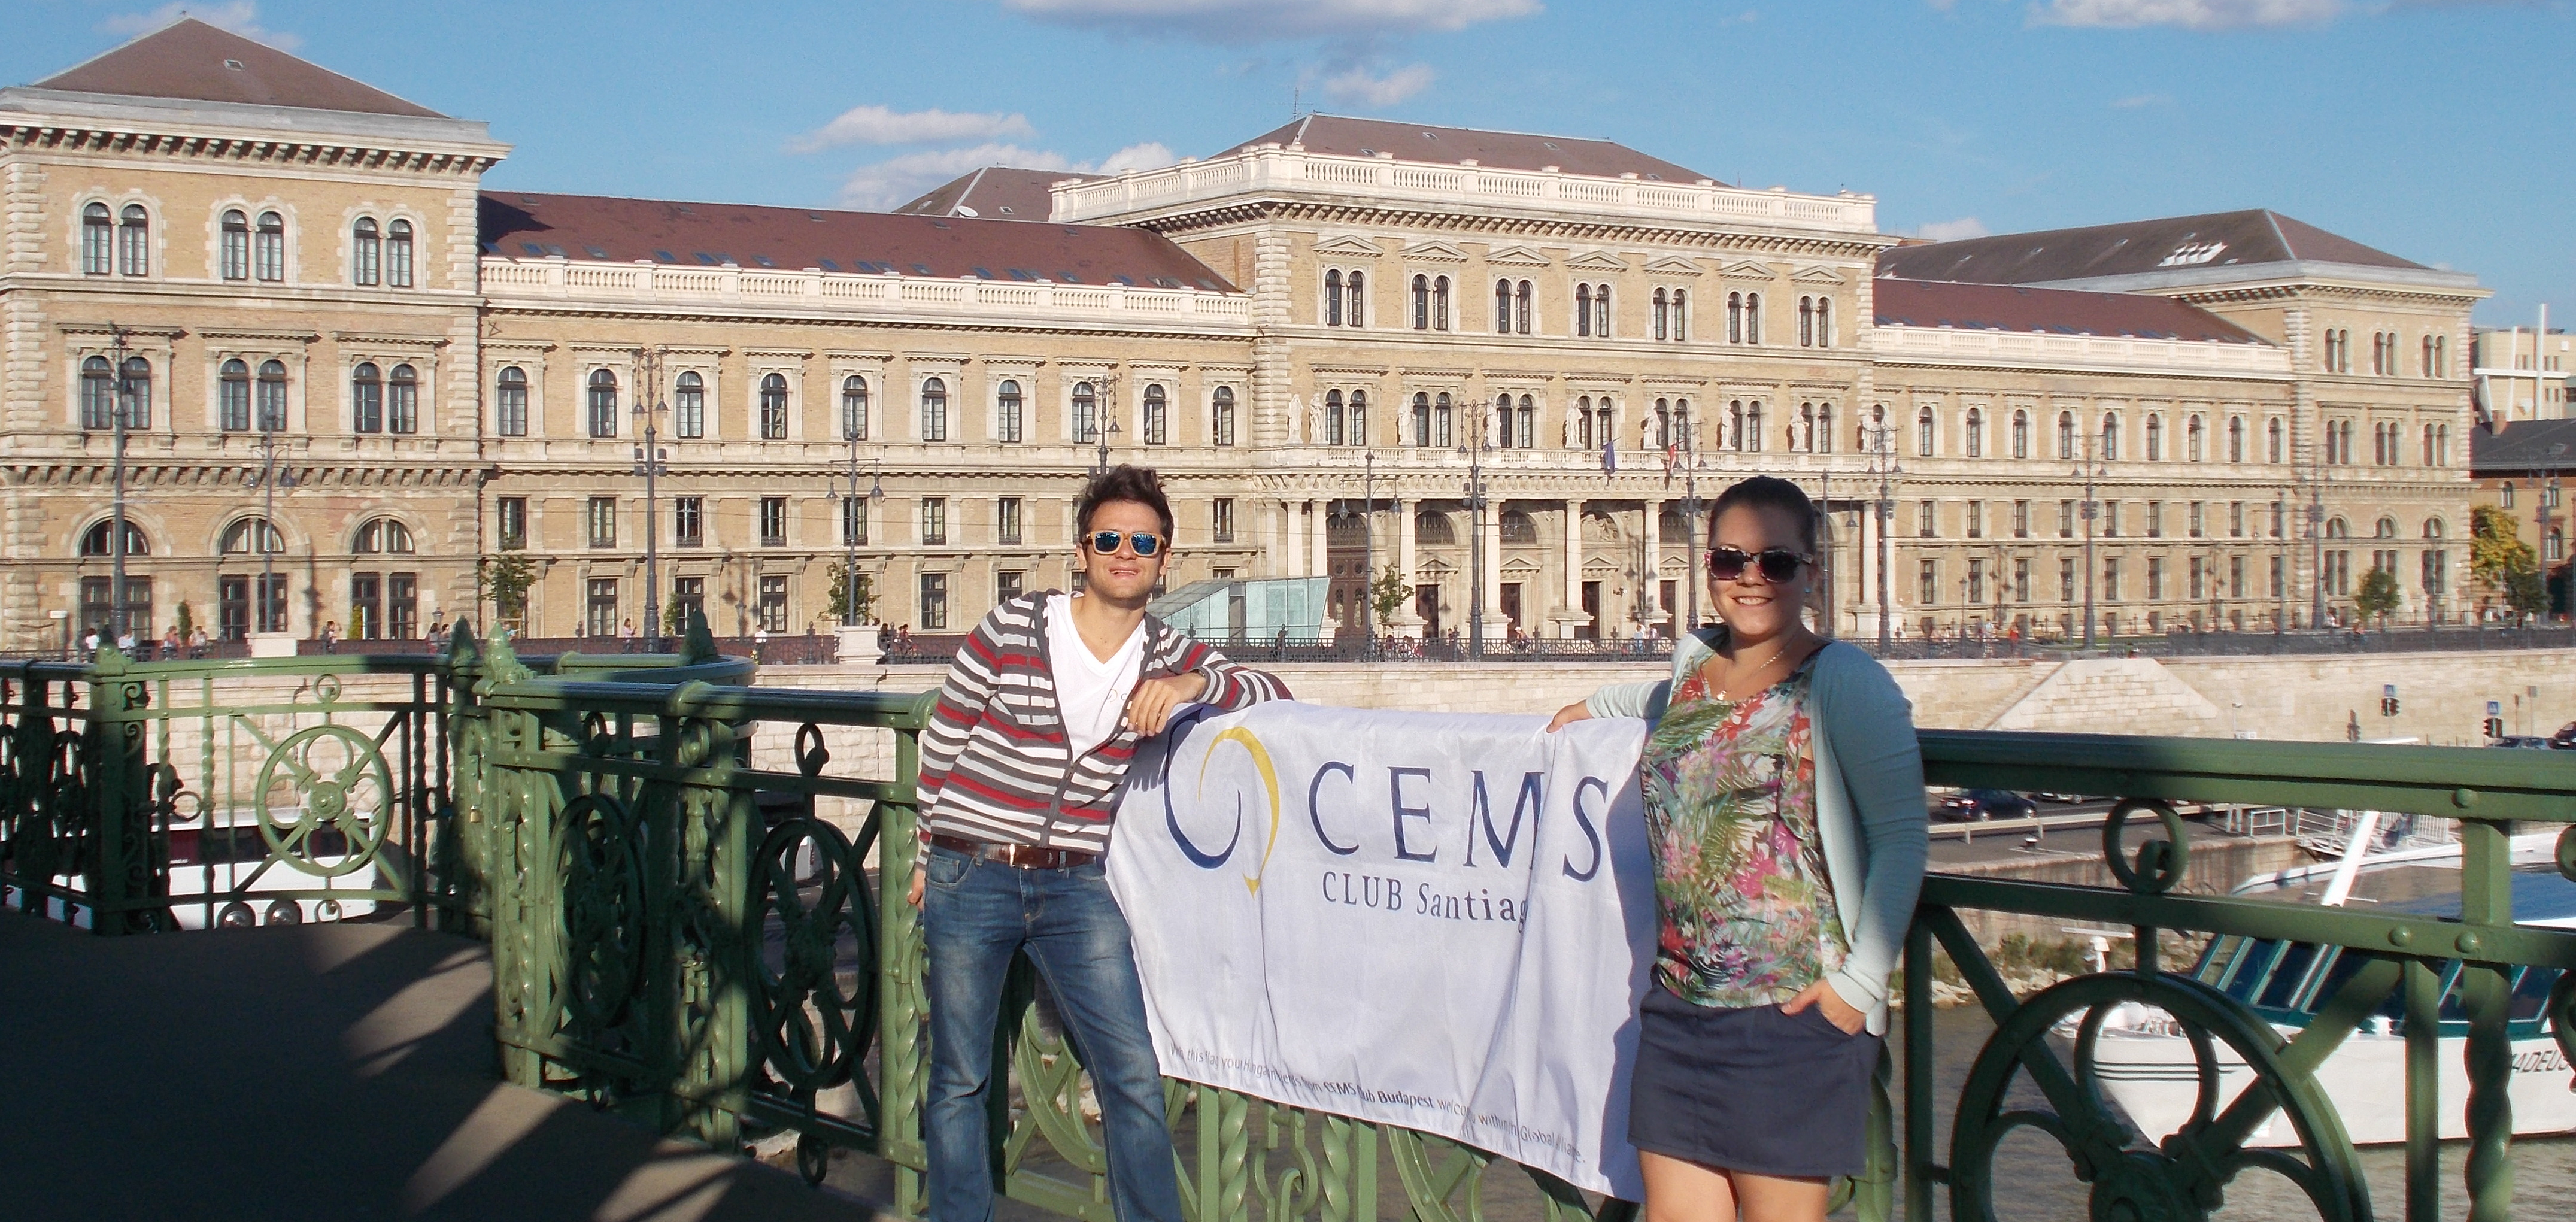 No matter where you are, keep up the CEMSpirit!